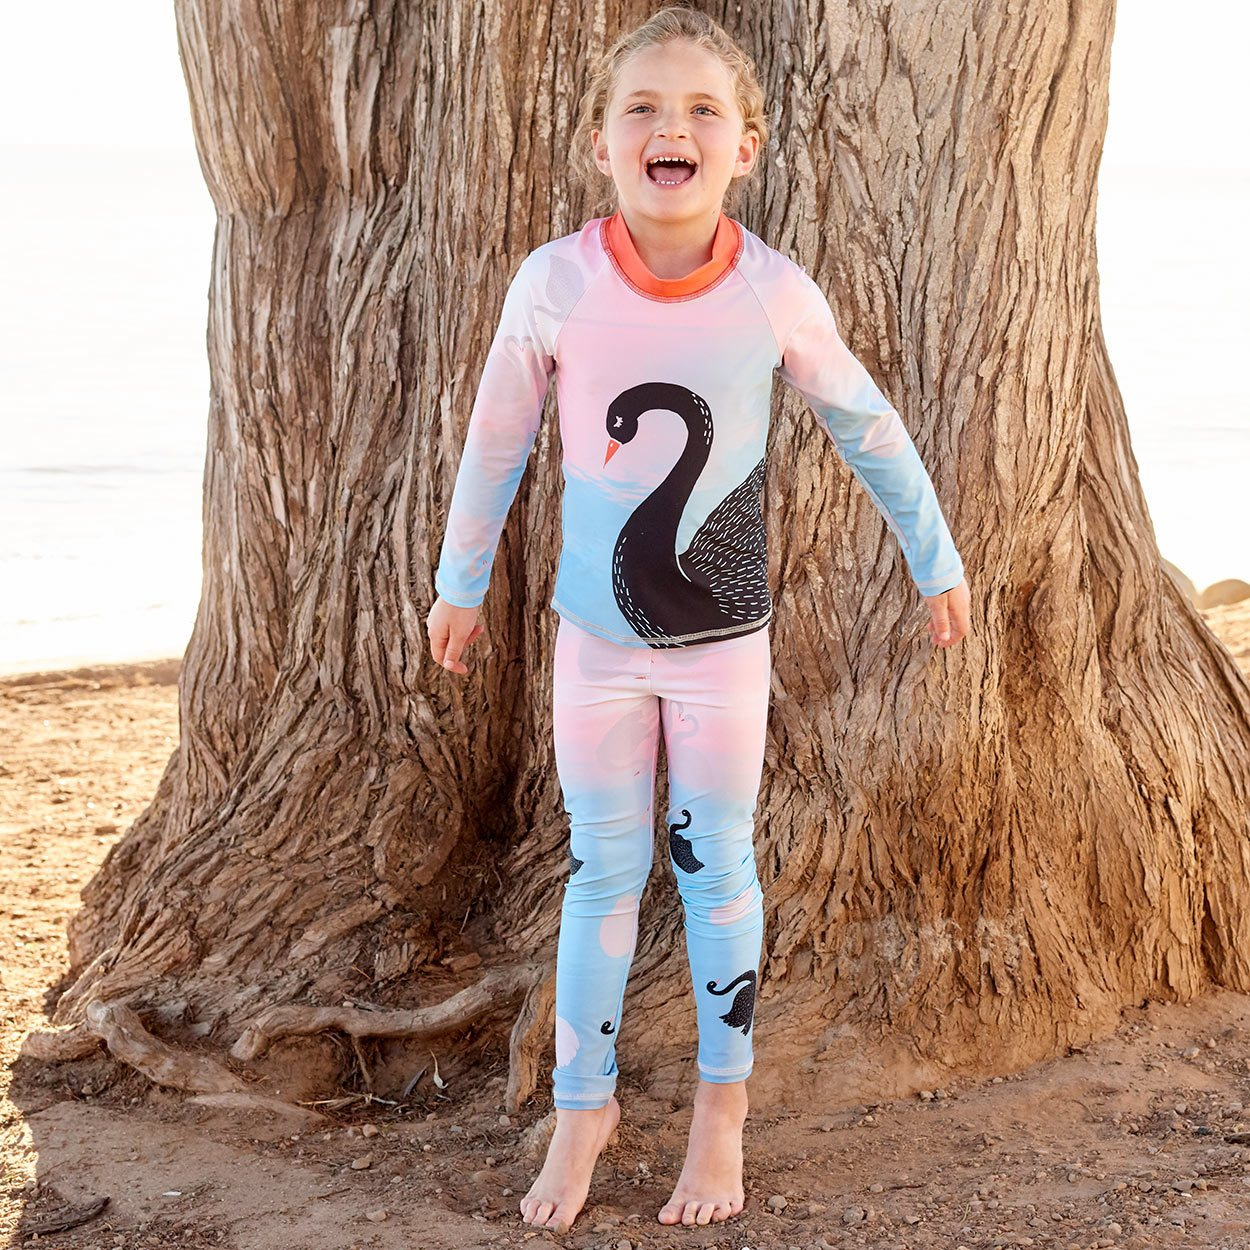 Swans Sunblocker Leggings Upf50 Girls Size 2 6 Peach Aqua Happy Girl On Her Tippy Toes In Front Of A Tree By The Beach Sunpoplife